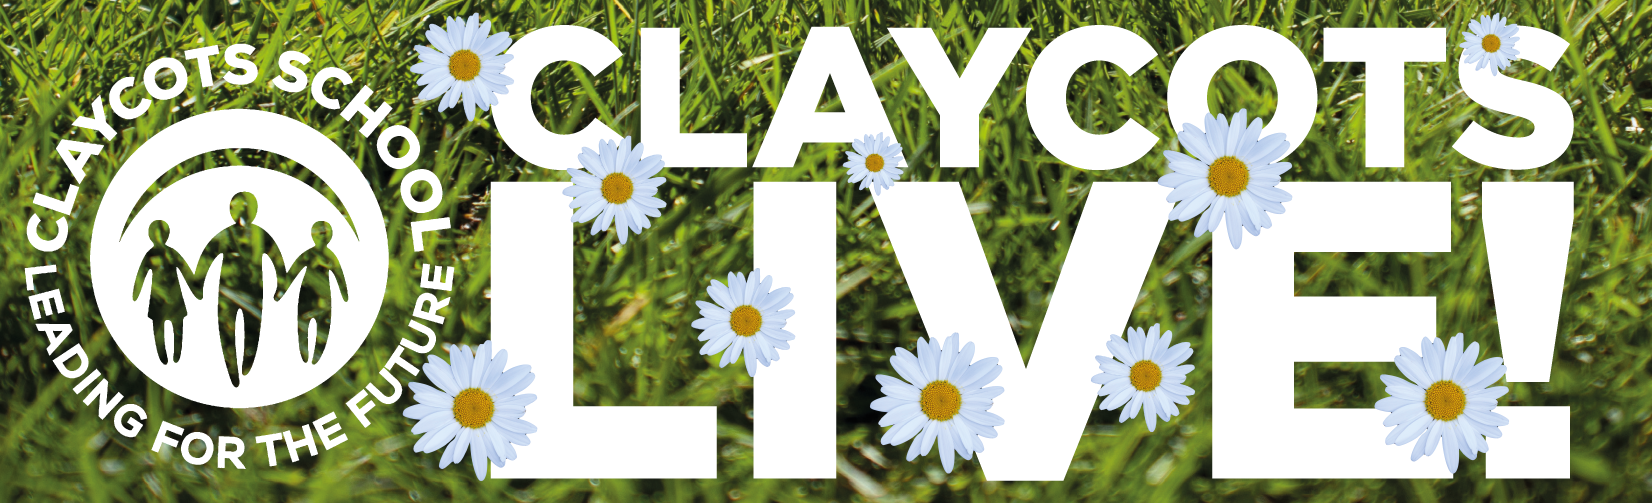 Claycots live logo